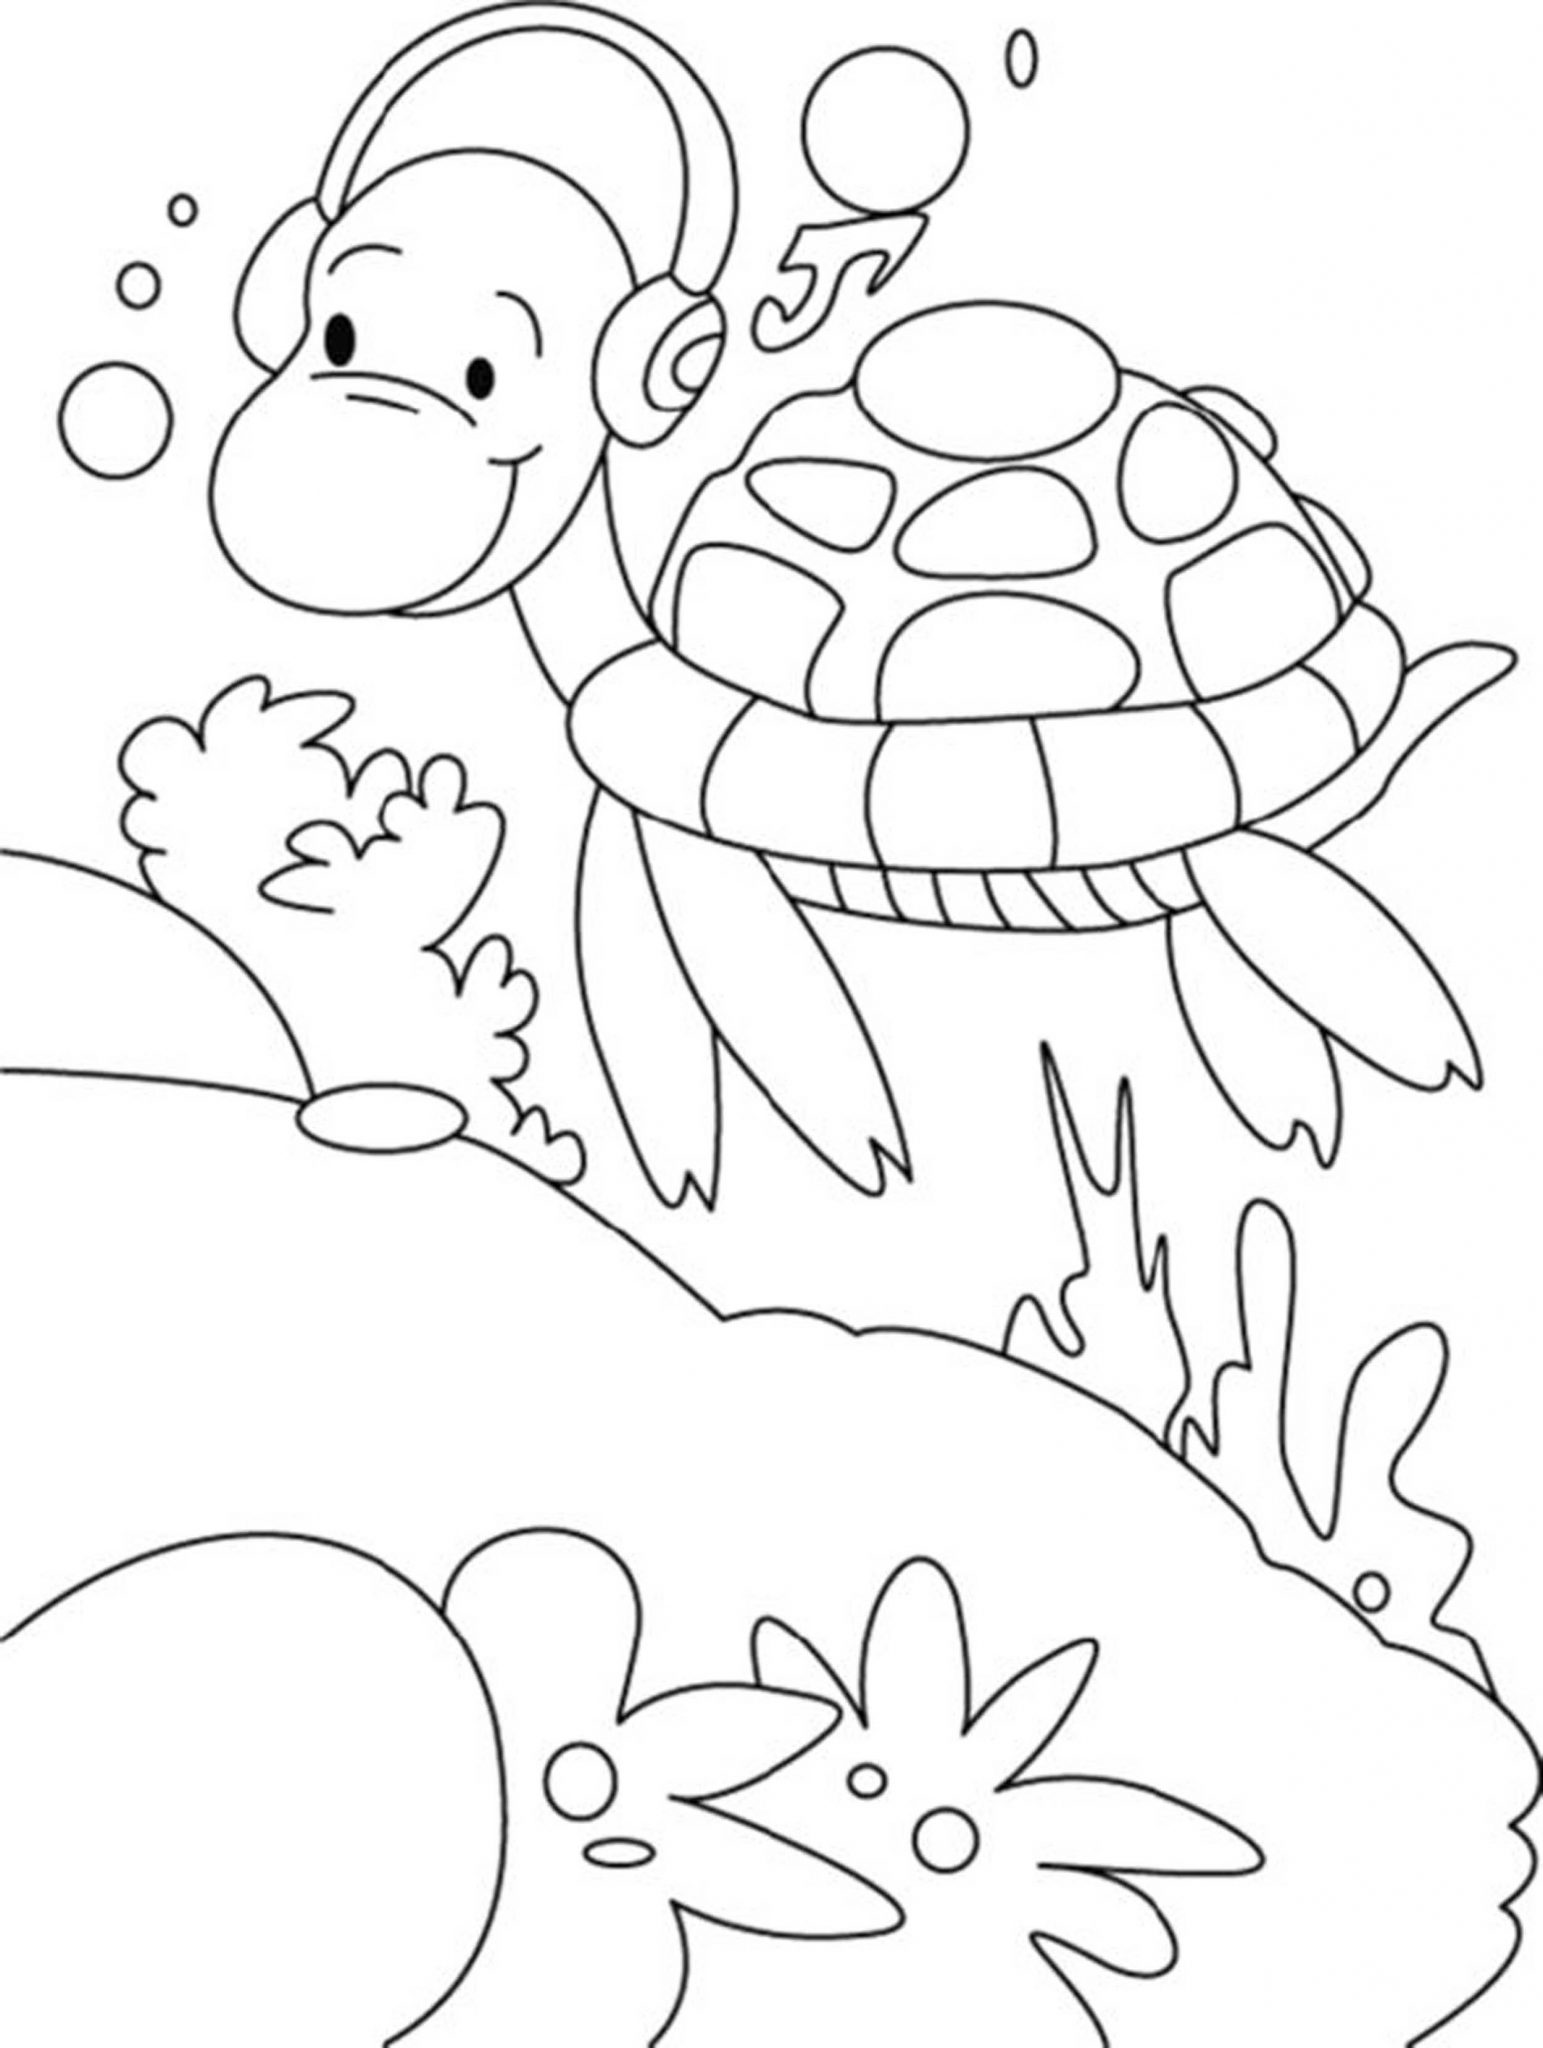 turtle cartoon coloring pages - photo#29